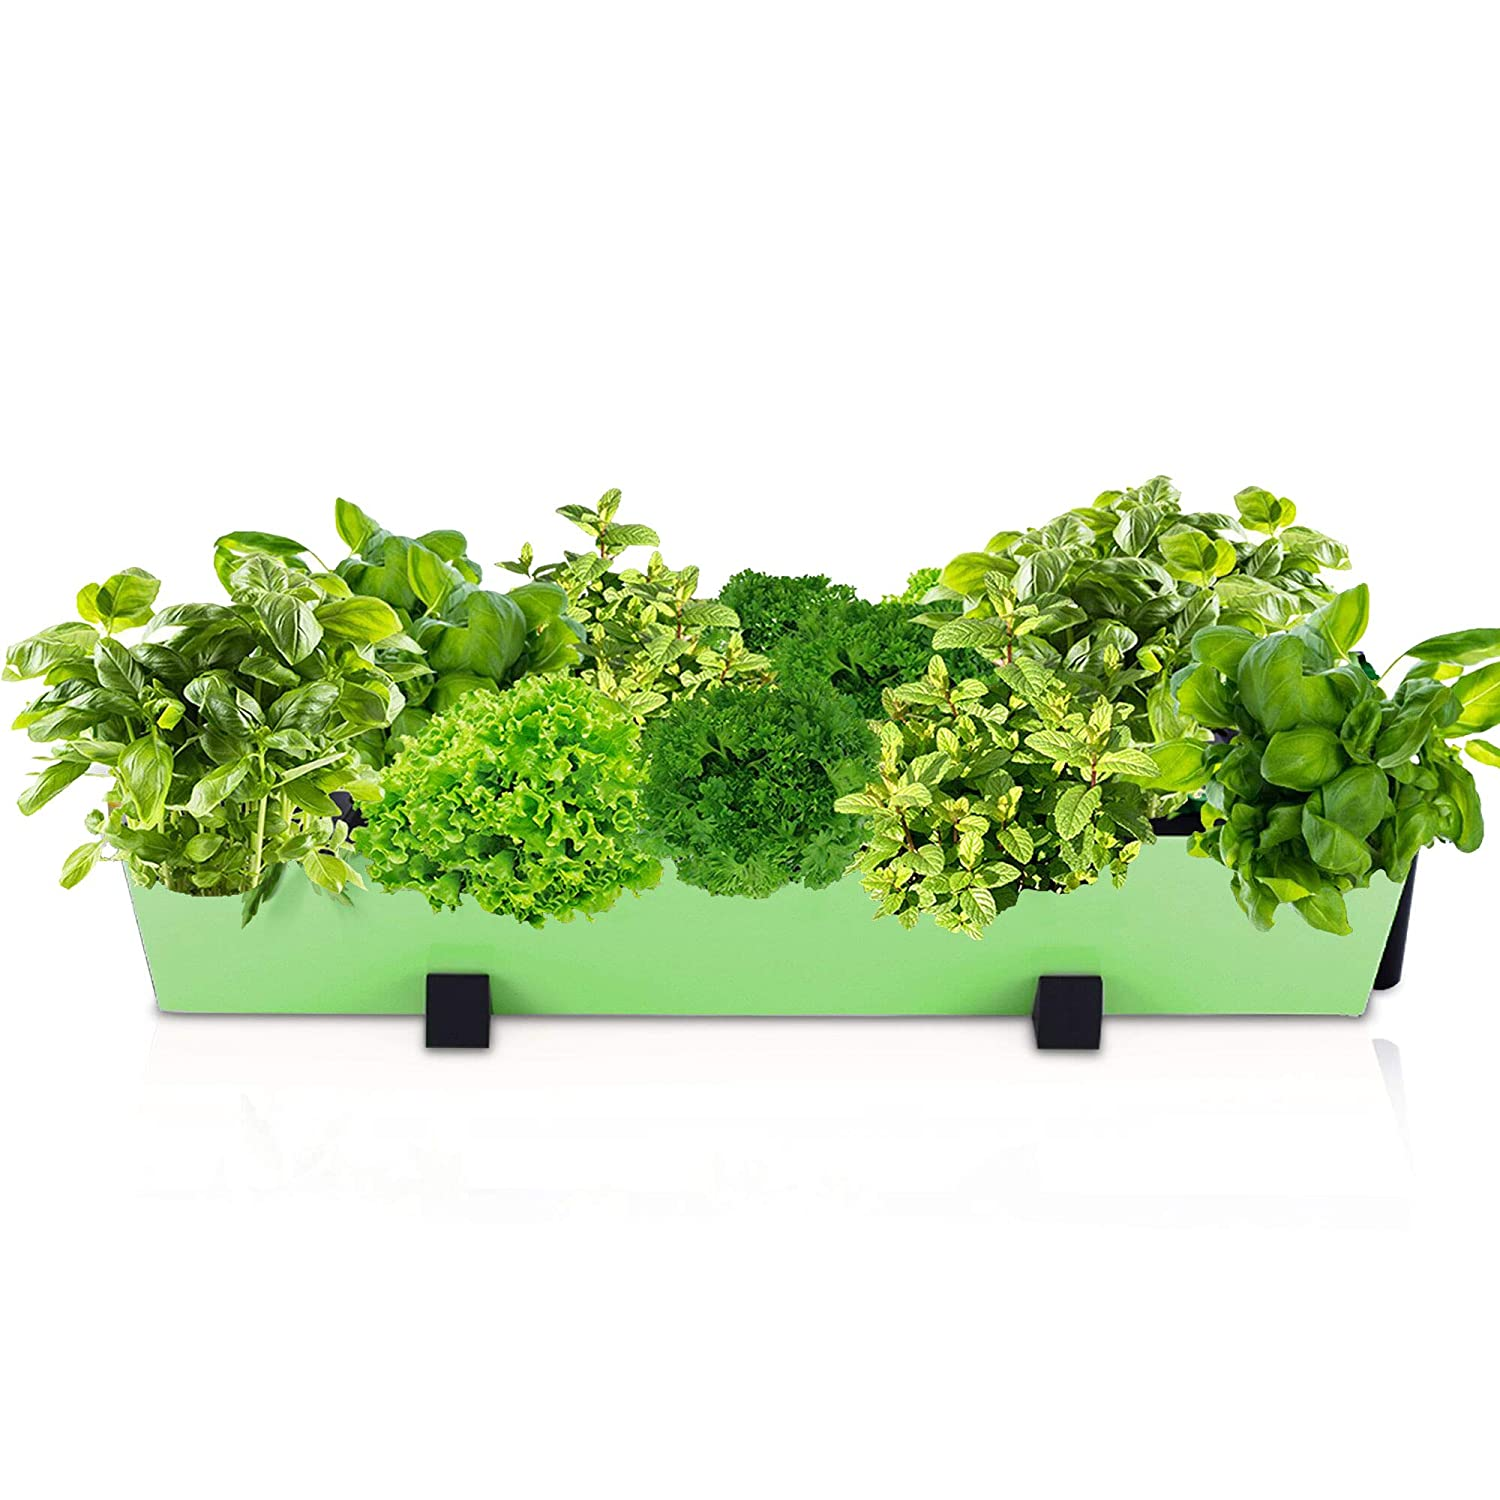 Indoor Herb Garden Planter Pot Flower Plant Pots Wall Decor Gardening Kit with Hanging Bracket – Plants Thrive with No Effort, Ideal for Busy Lifestyles – Standing Modern Succulent Pots 1 Lime